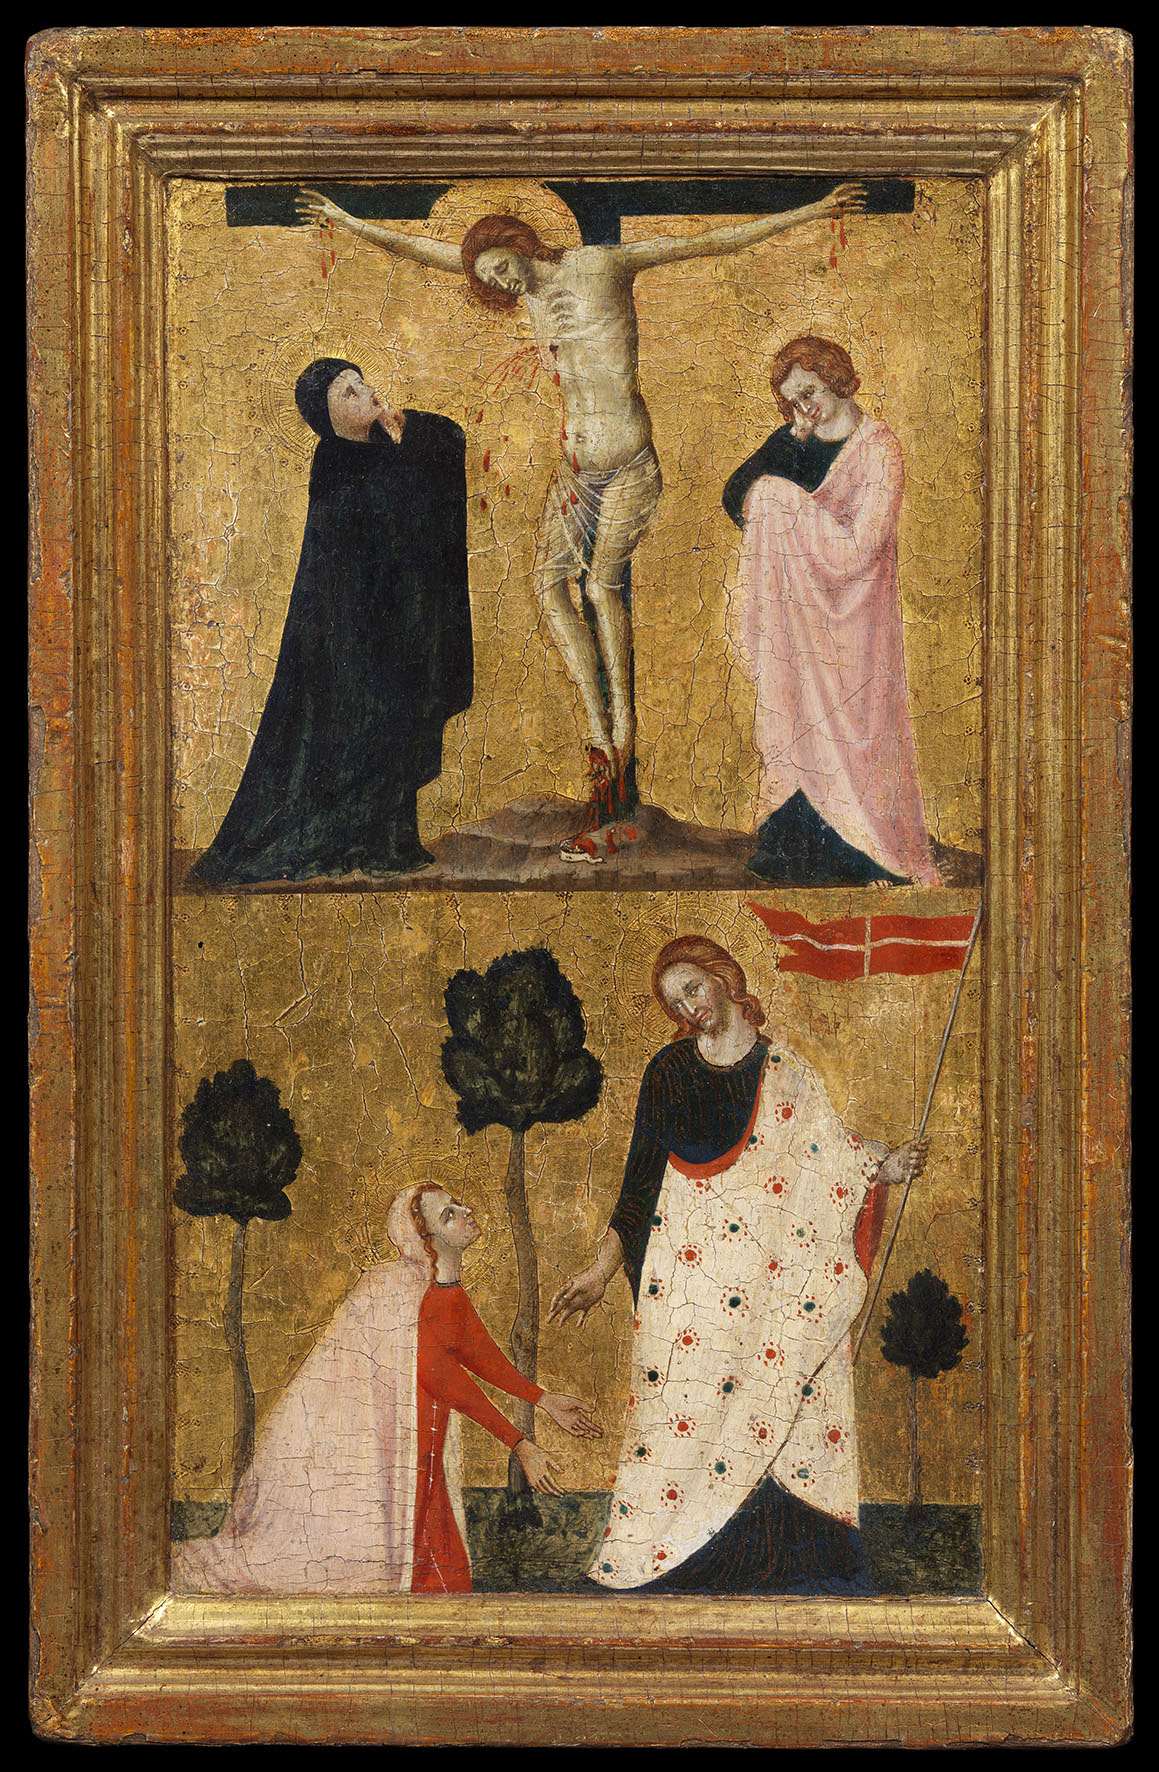 The Crucifixion, Noli Me Tangere, 1330s